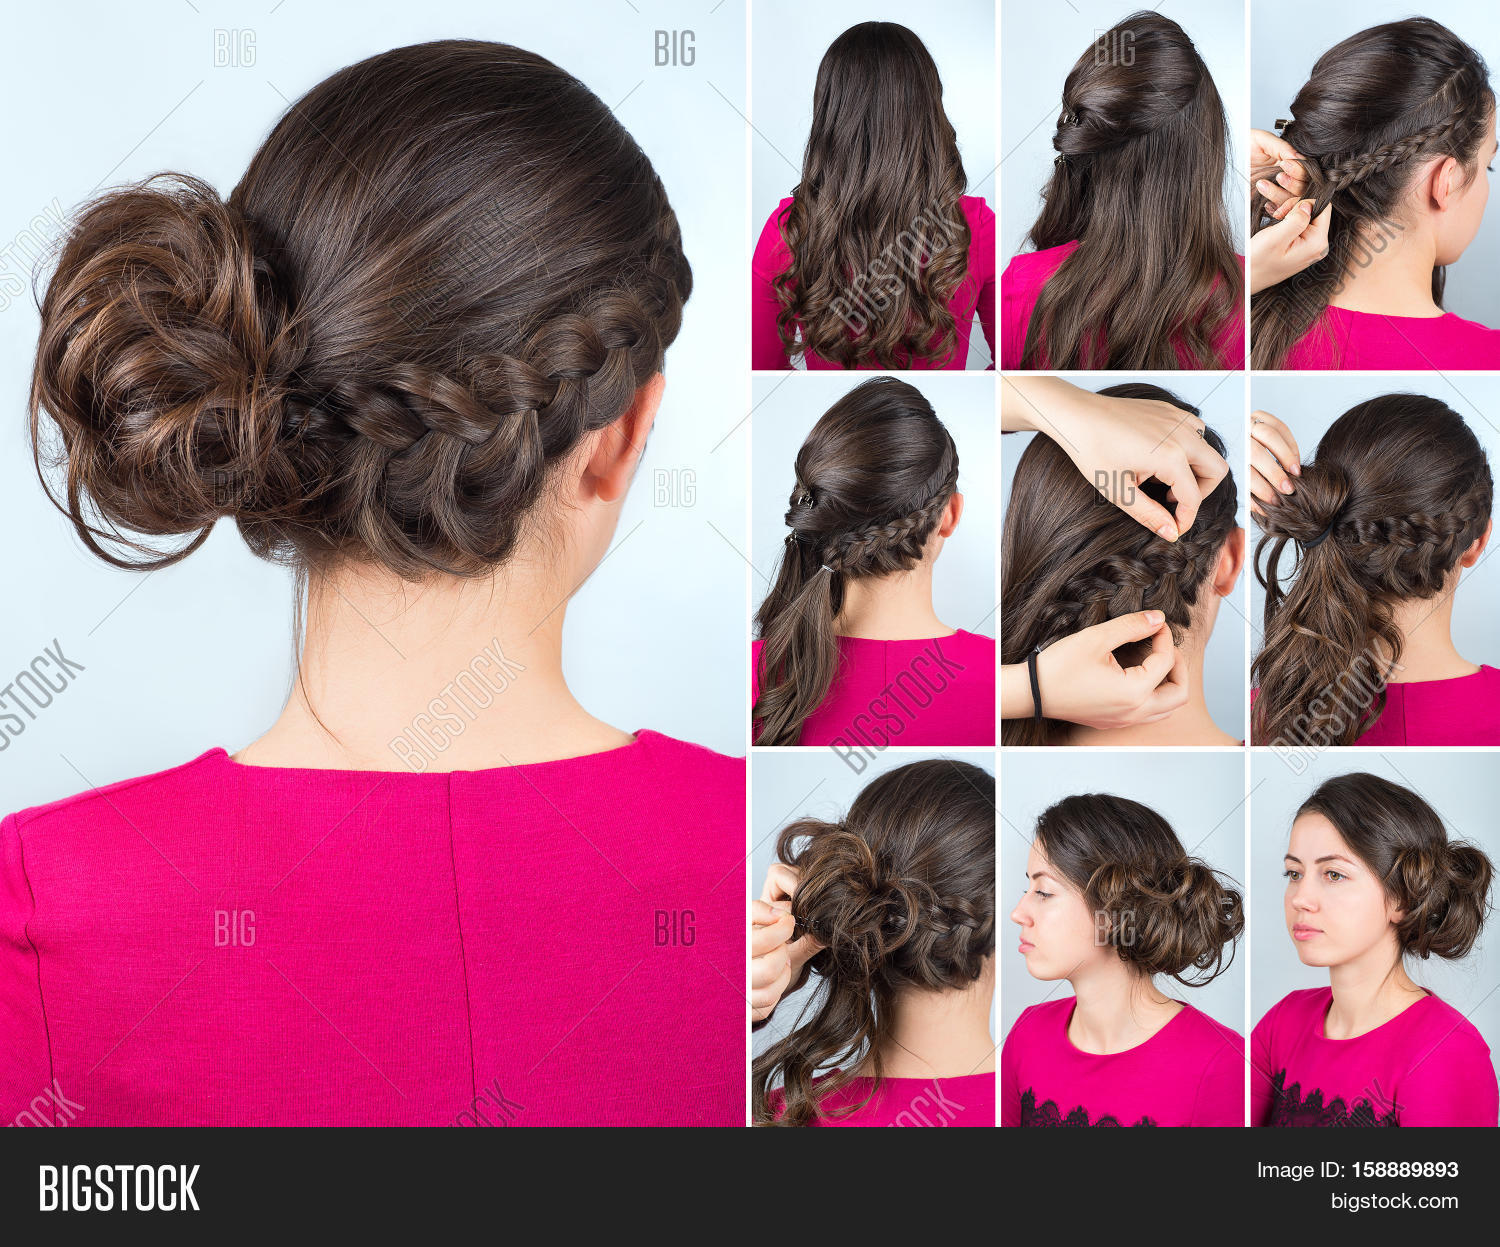 Hairstyle Twisted Bun To One Side And Braid On Curly Hair Tutorial For Long